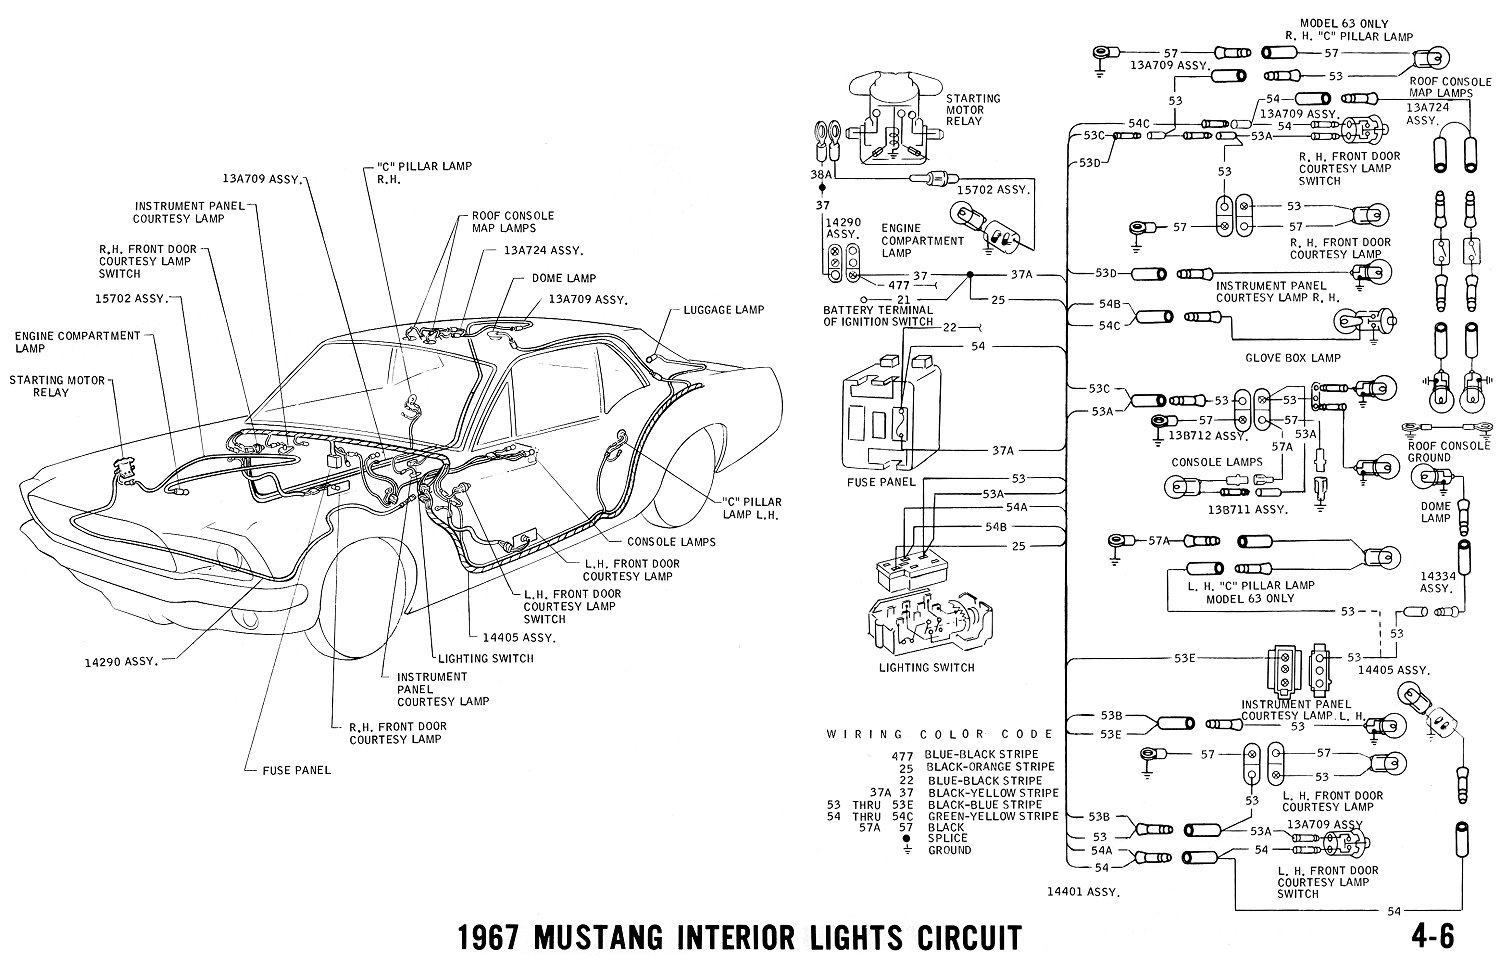 68 Chevelle Headlight Wiring Diagram Library 1968 Camaro Headlamp 1967 Mustang And Vacuum Diagrams Average Joe Restoration Courticy Light 67